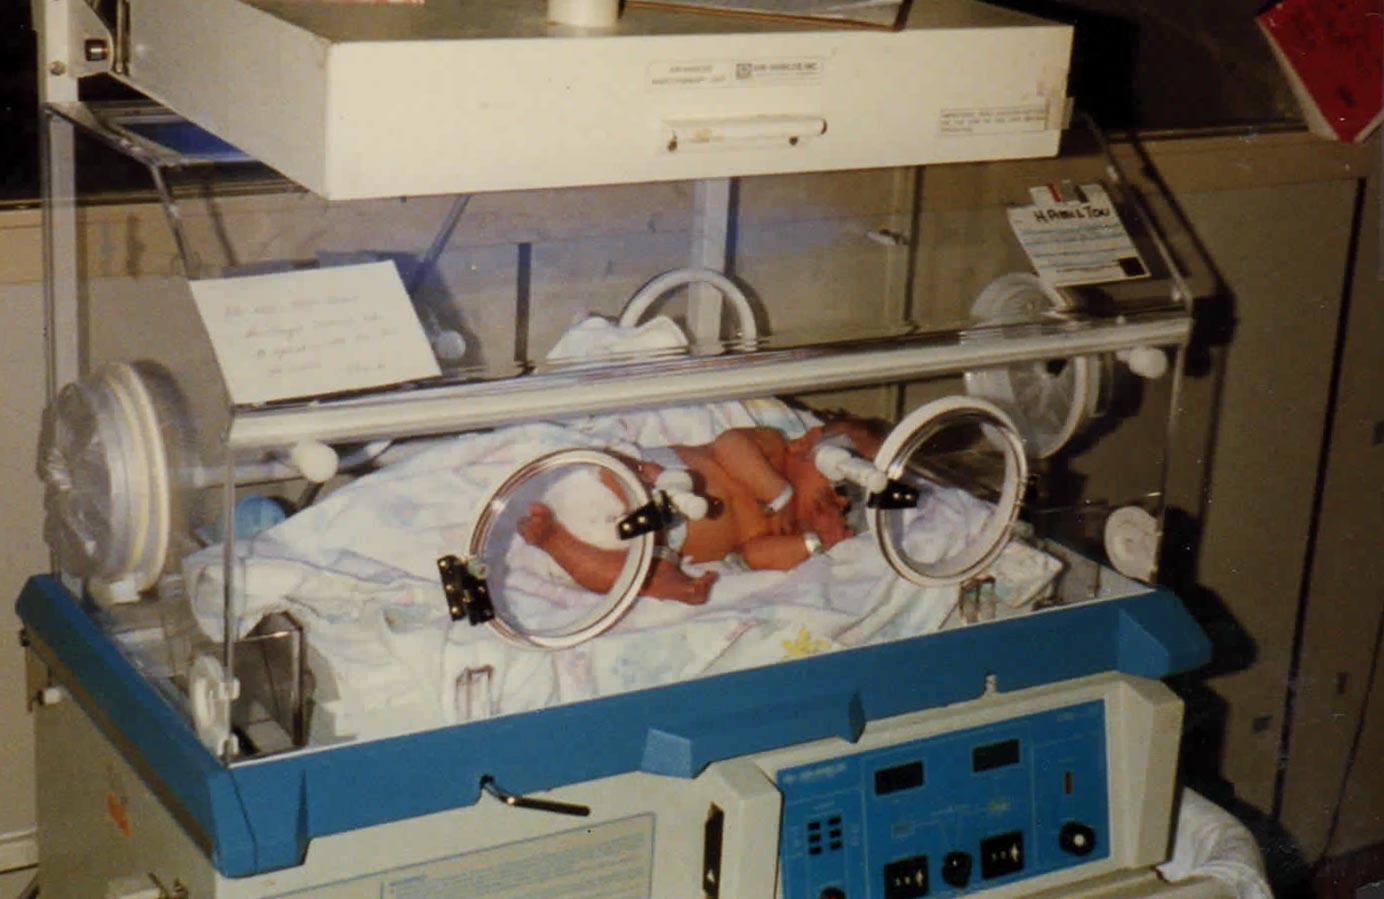 Here is this 4 lb 10 oz baby who was born with medical needs, lying in an incubator, who needed this liquid gold called Mother's Milk but I couldn't produce enough to provide for one feeding let alone the months that lay ahead.